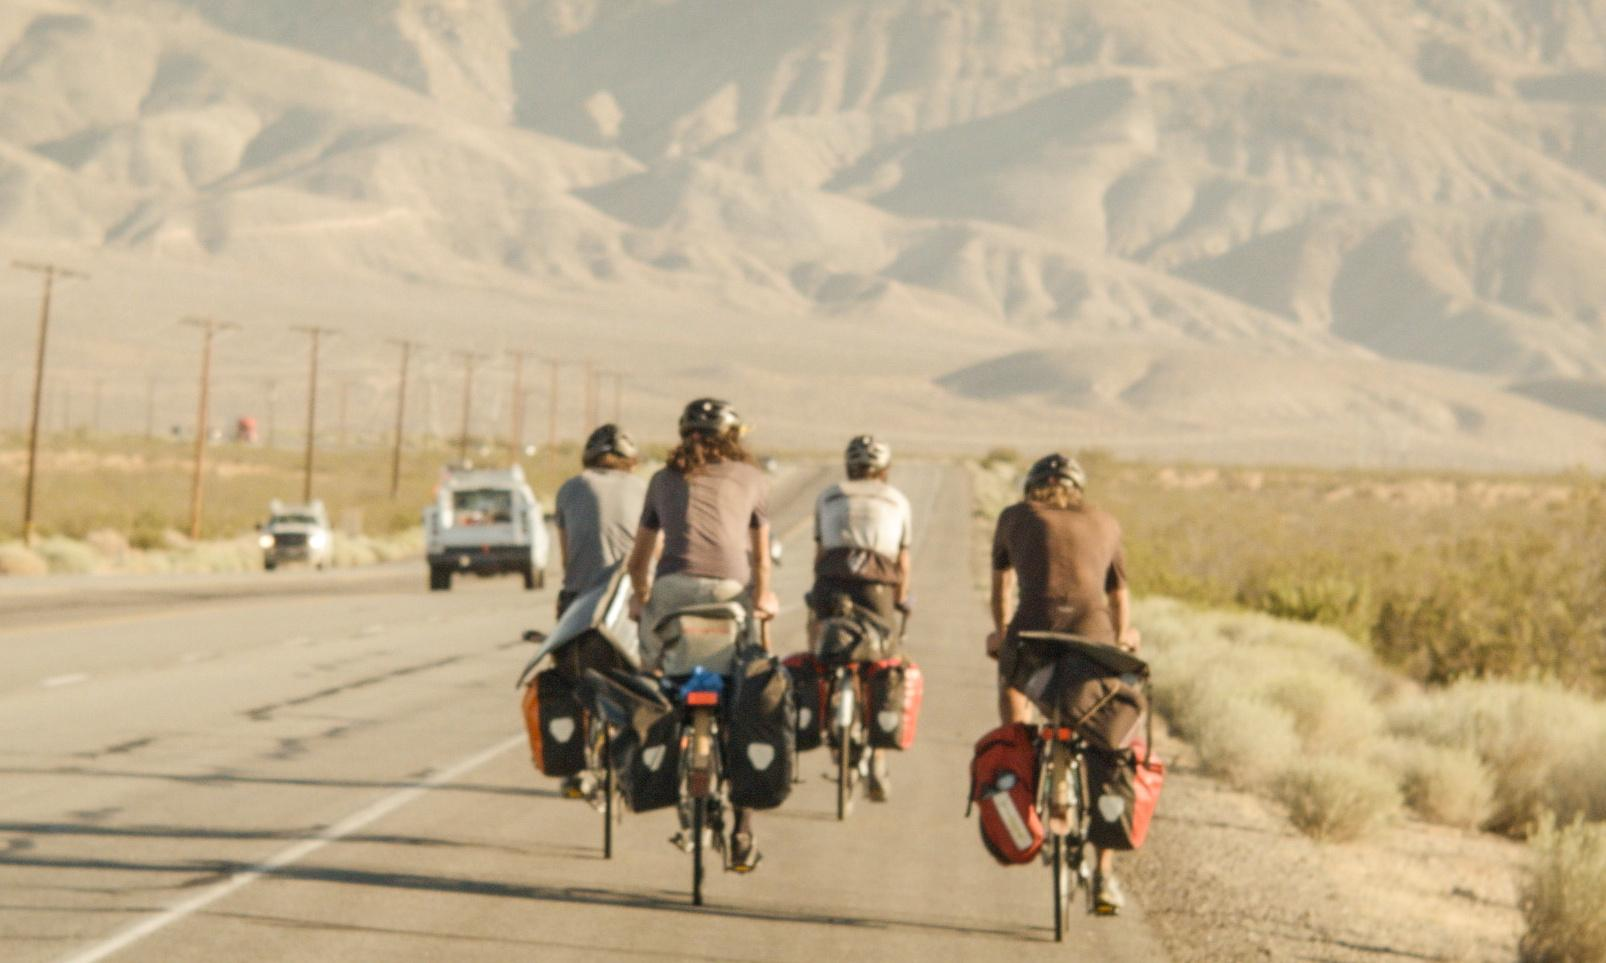 The Bikes of Wrath review – cyclists take the dustbowl migrants' road